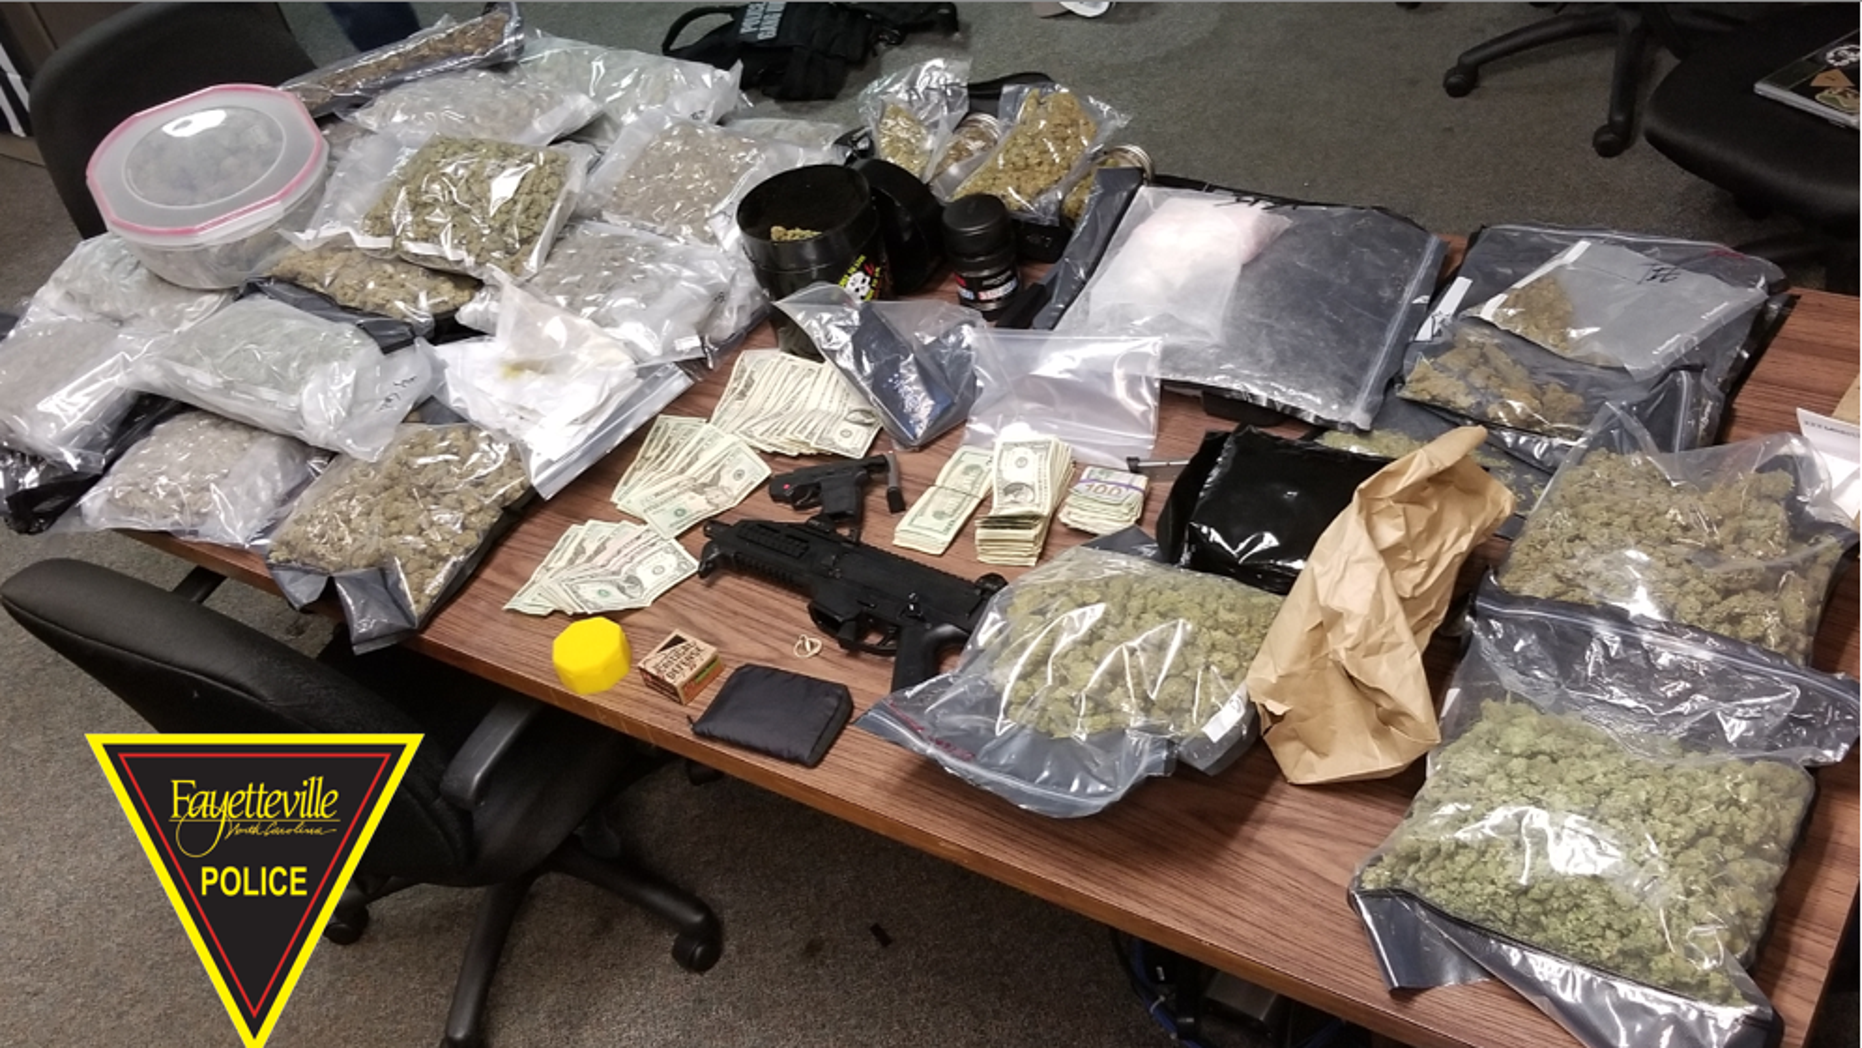 North Carolina investigators seized 100 pounds of marijuana and $70,000 in cash among other illegal items from a home day care in Fayettville last week.